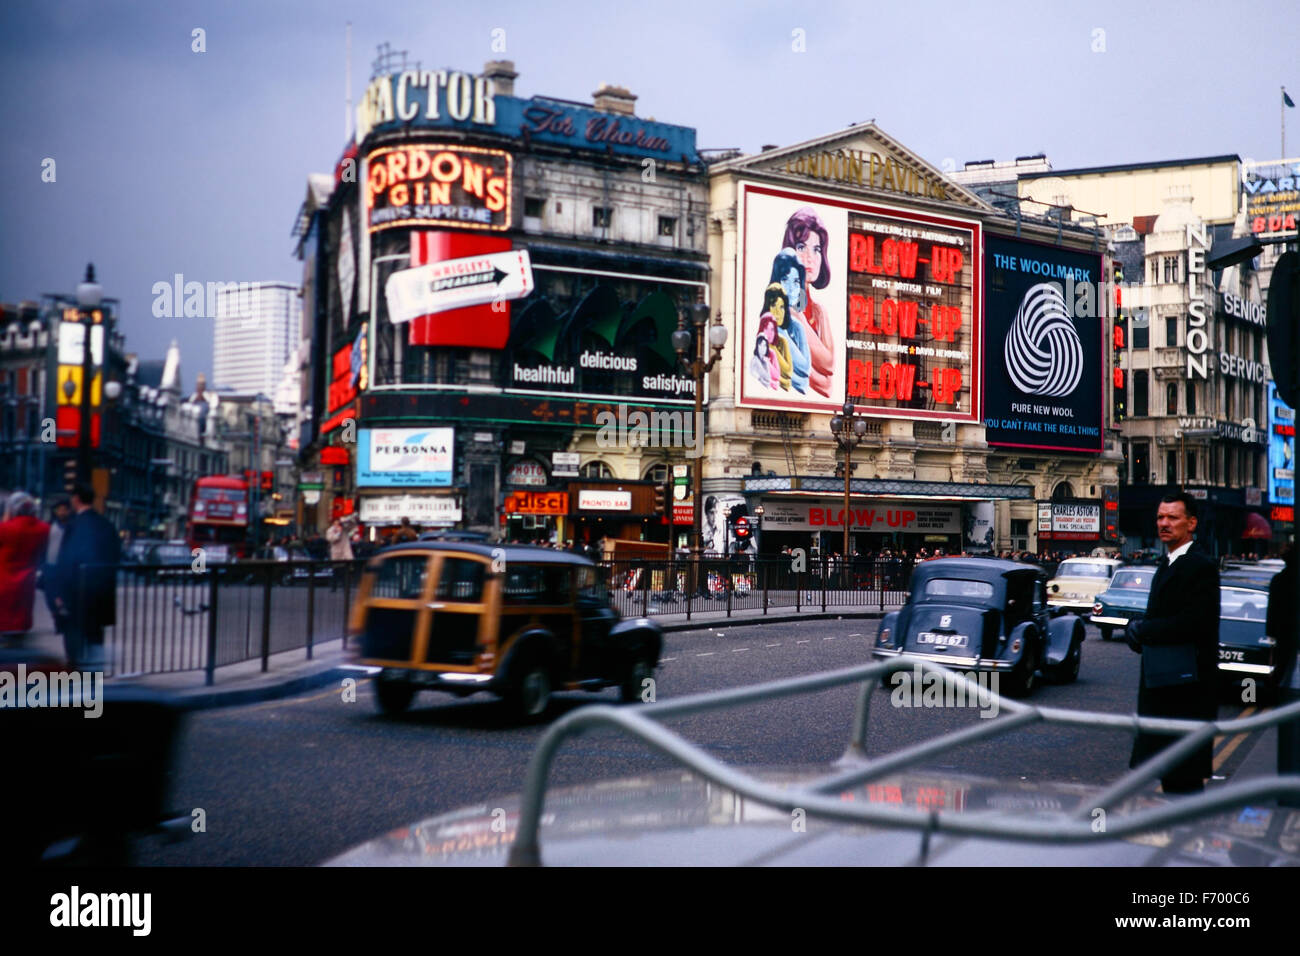 Vintage image of London taken in April 1967 showing various billboards of the time - Stock Image